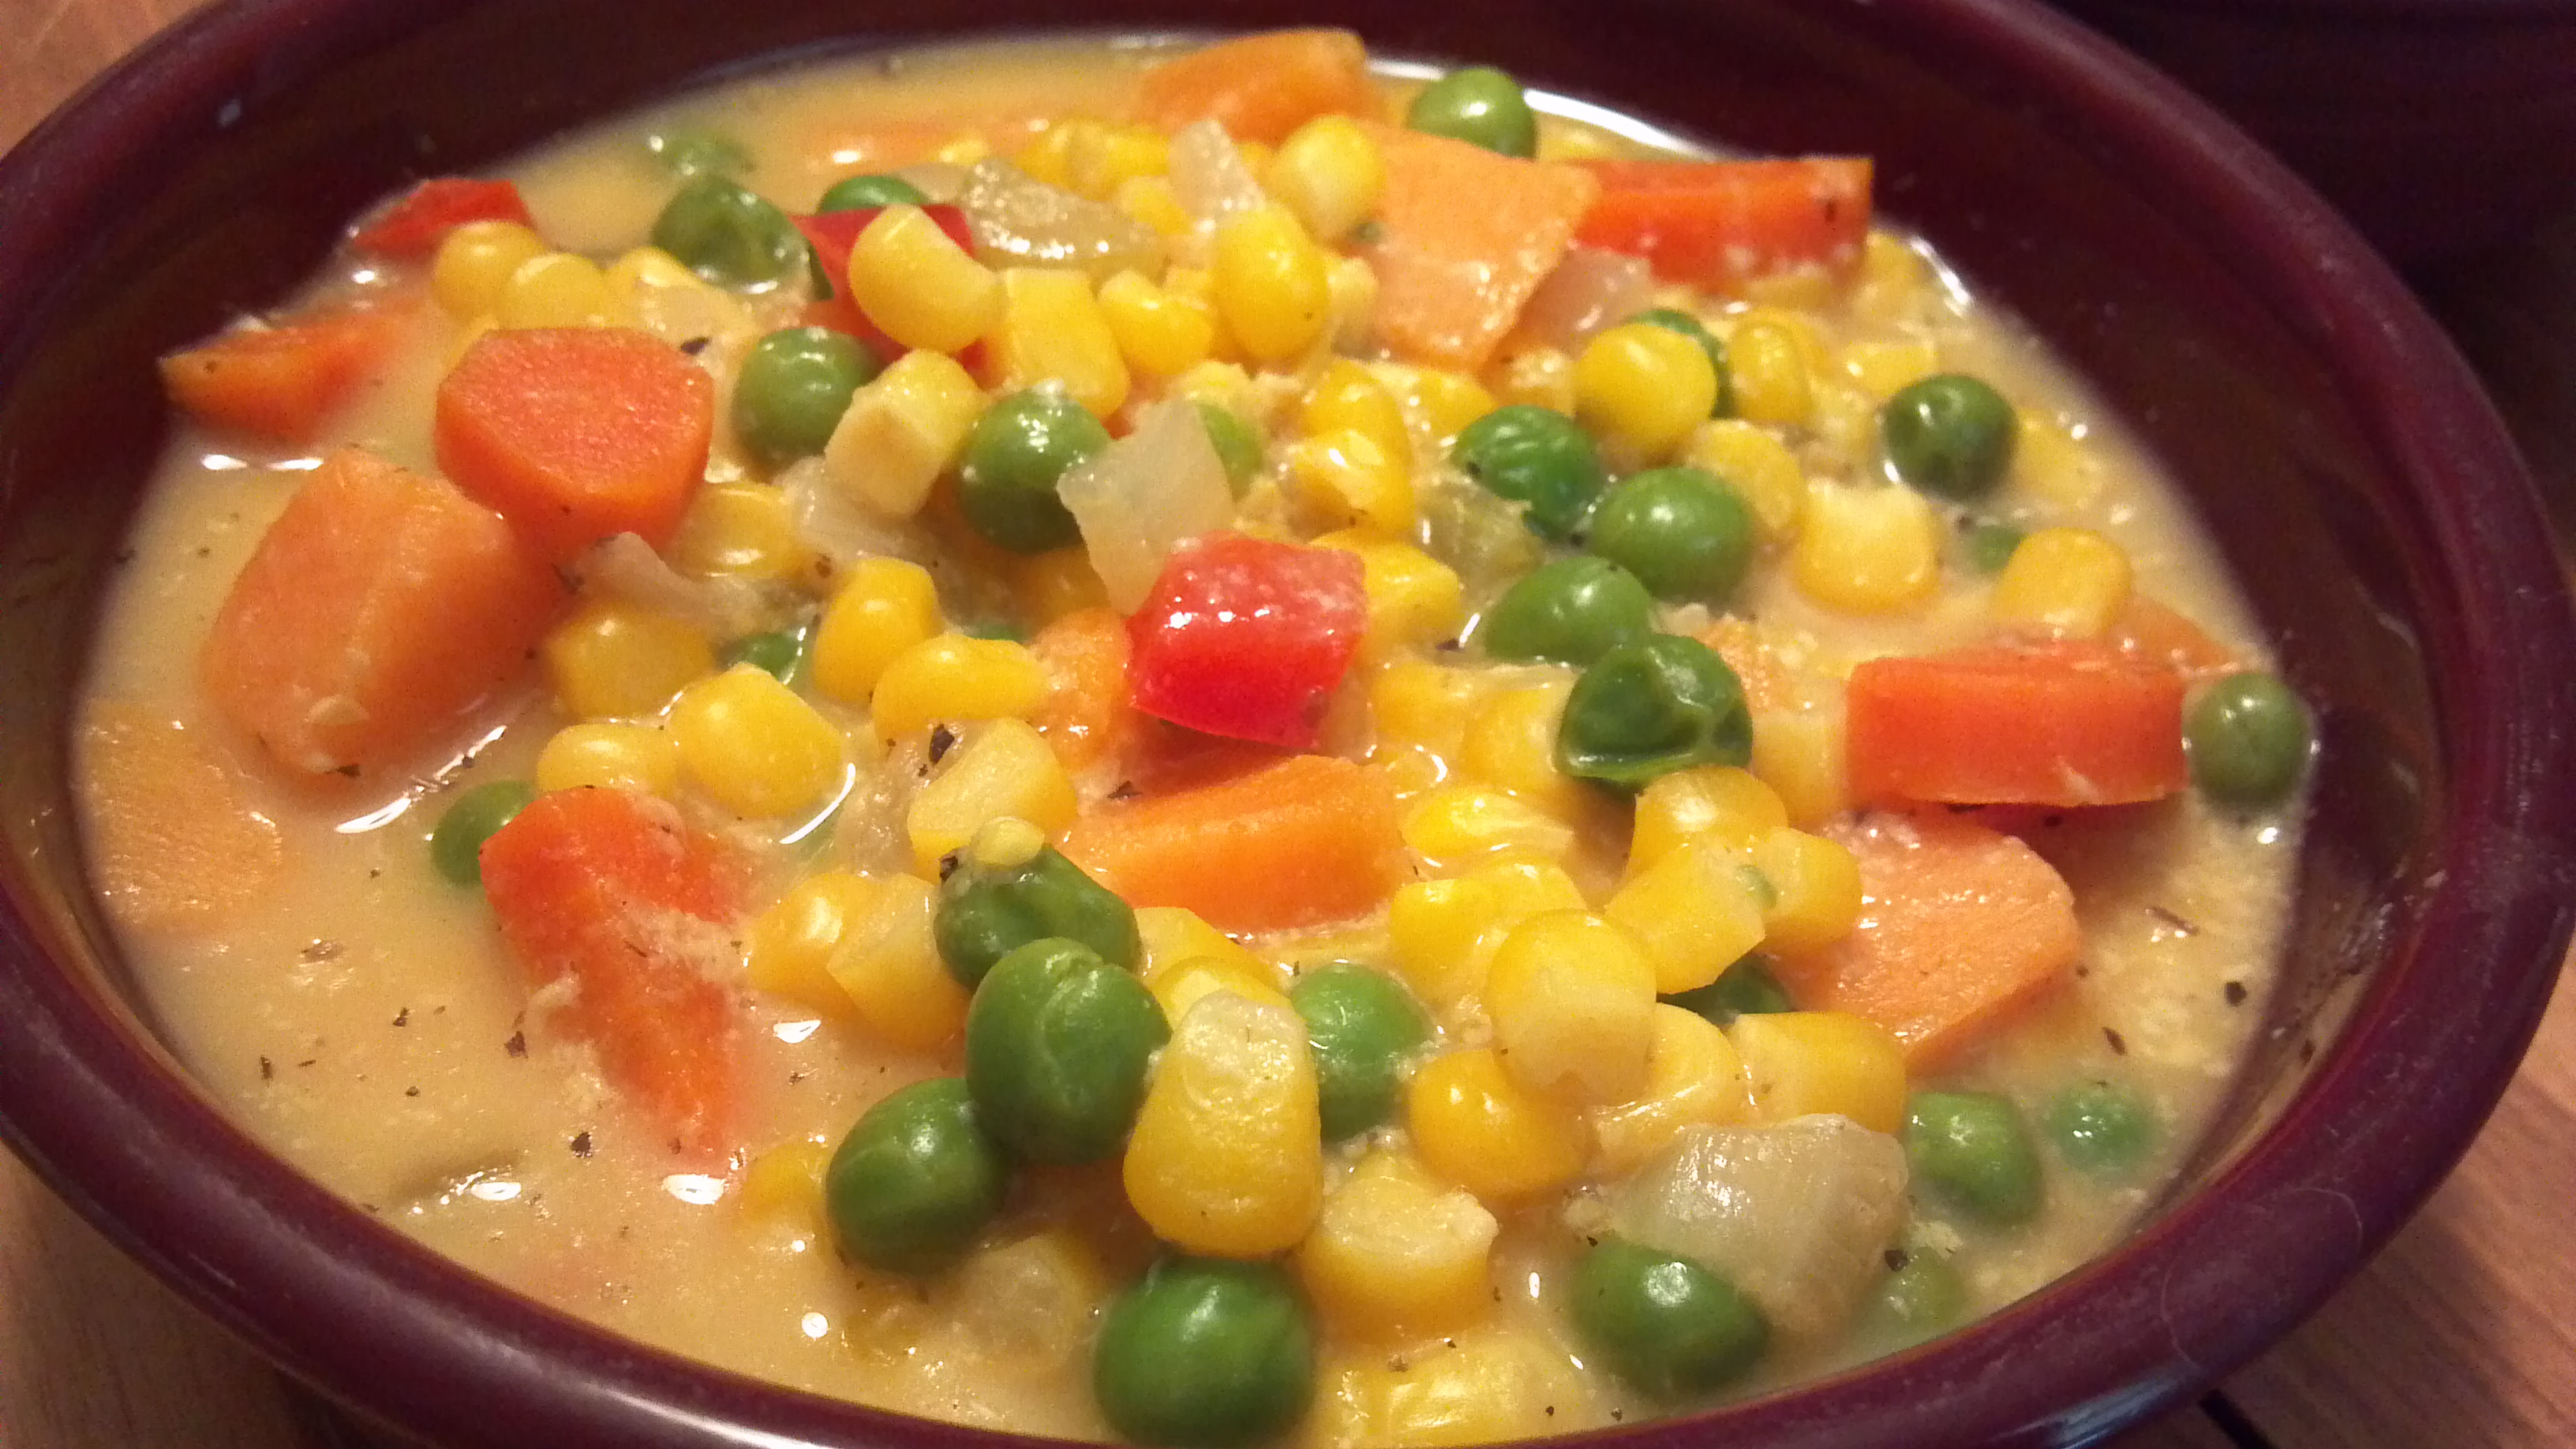 Corn Chowder Soup Recipe + Product Reviews - Clean Eating Veggie Girl